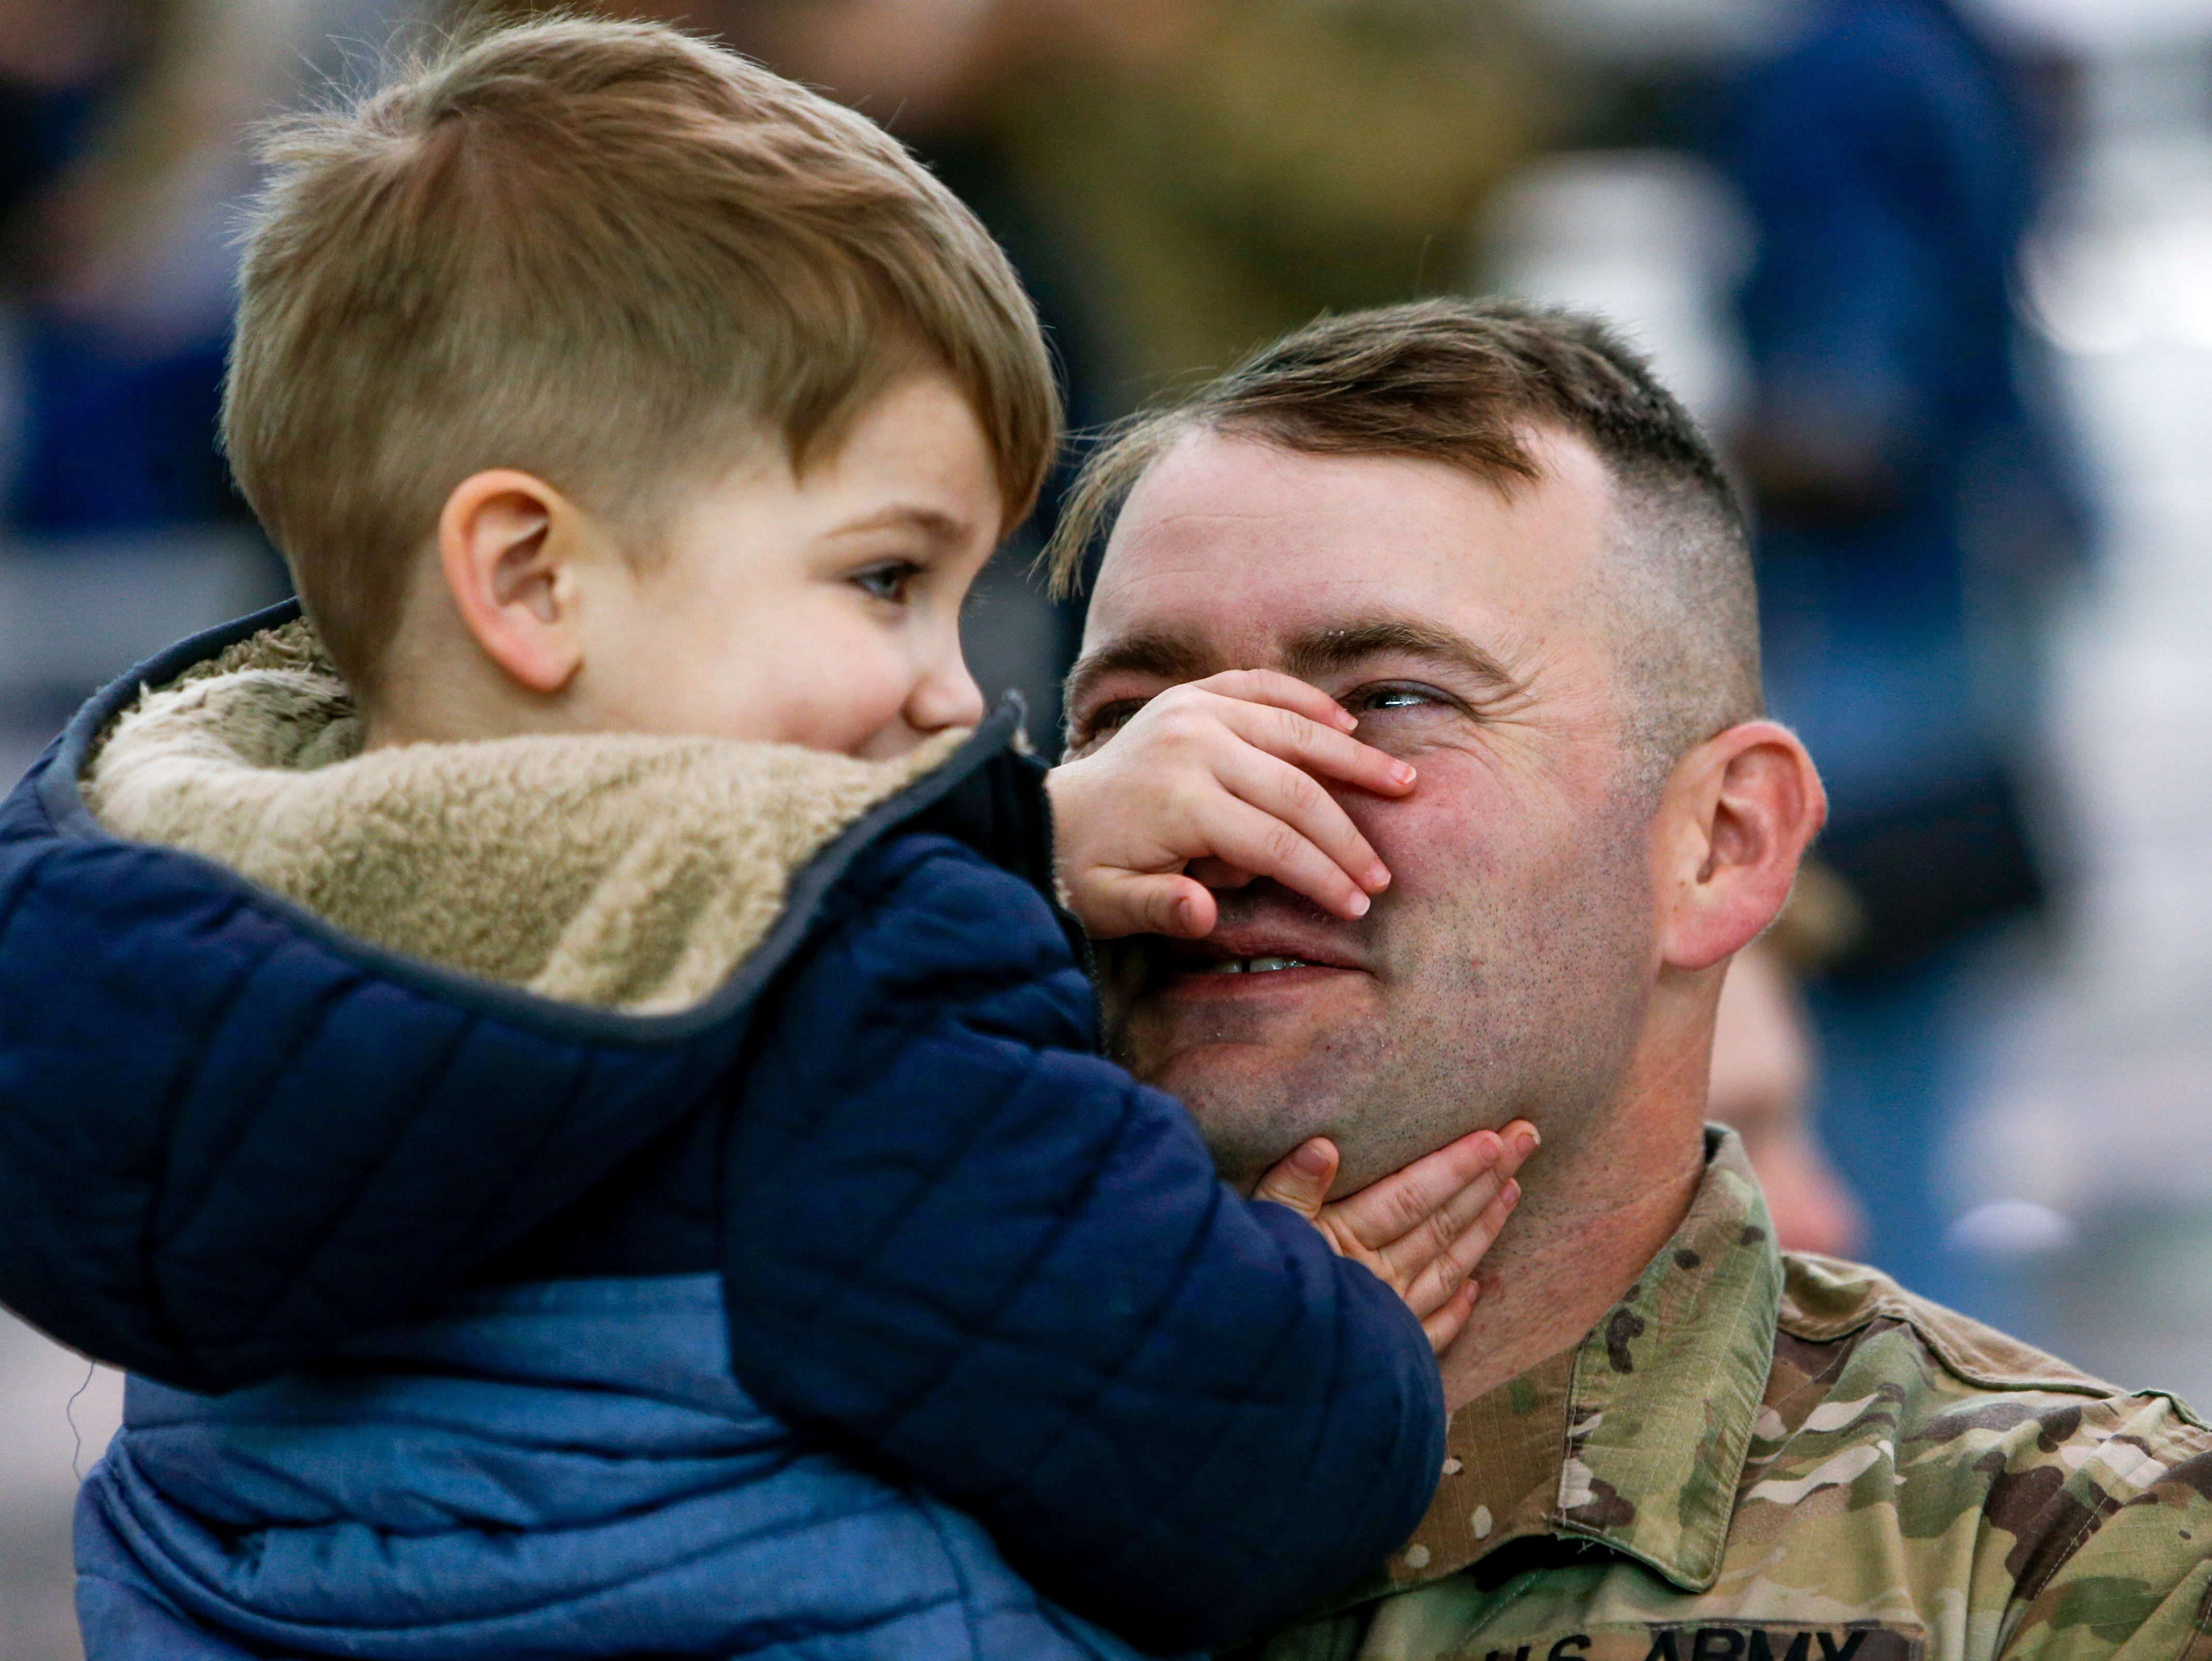 Kenneth Tyler holds up his son Roland Tyler, 2, while seeing him for the first time after deployment during the return of soldiers from the 101st Combat Aviation Brigade of 101st Airborne Division (Air Assault) at Campbell Army Air Field in Fort Campbell, KY., on Sunday, March 10, 2019.